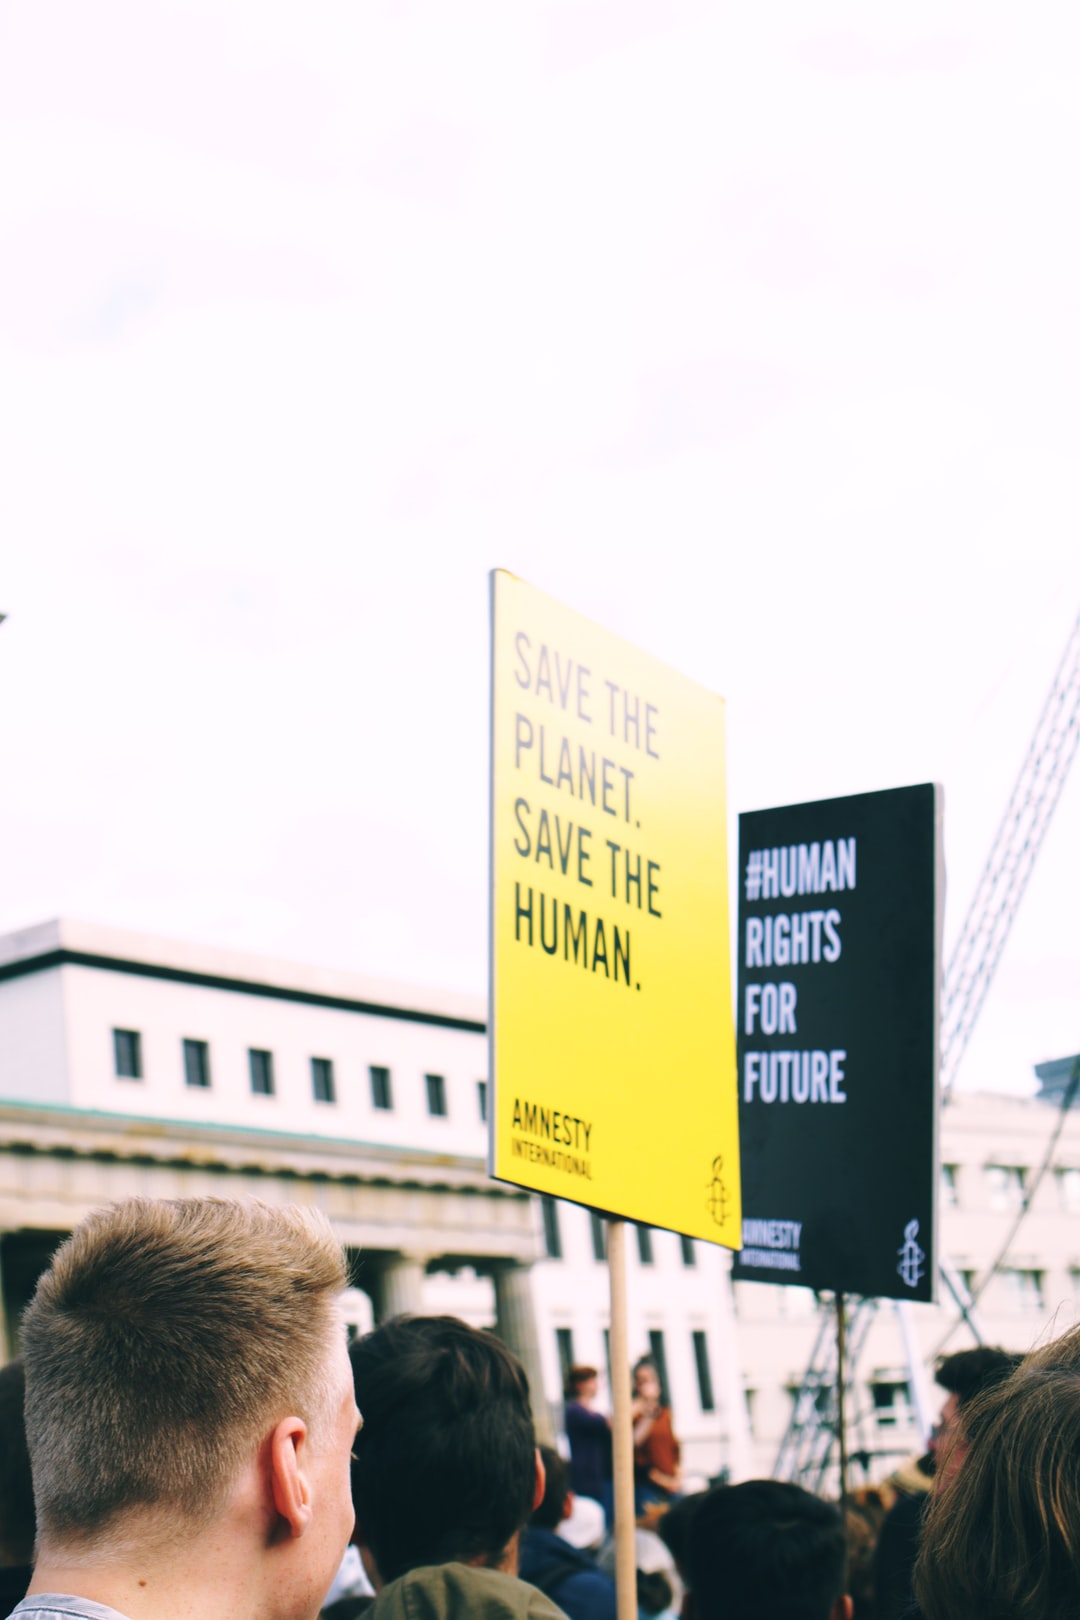 A young man in Berlin protests for planet and environment care.